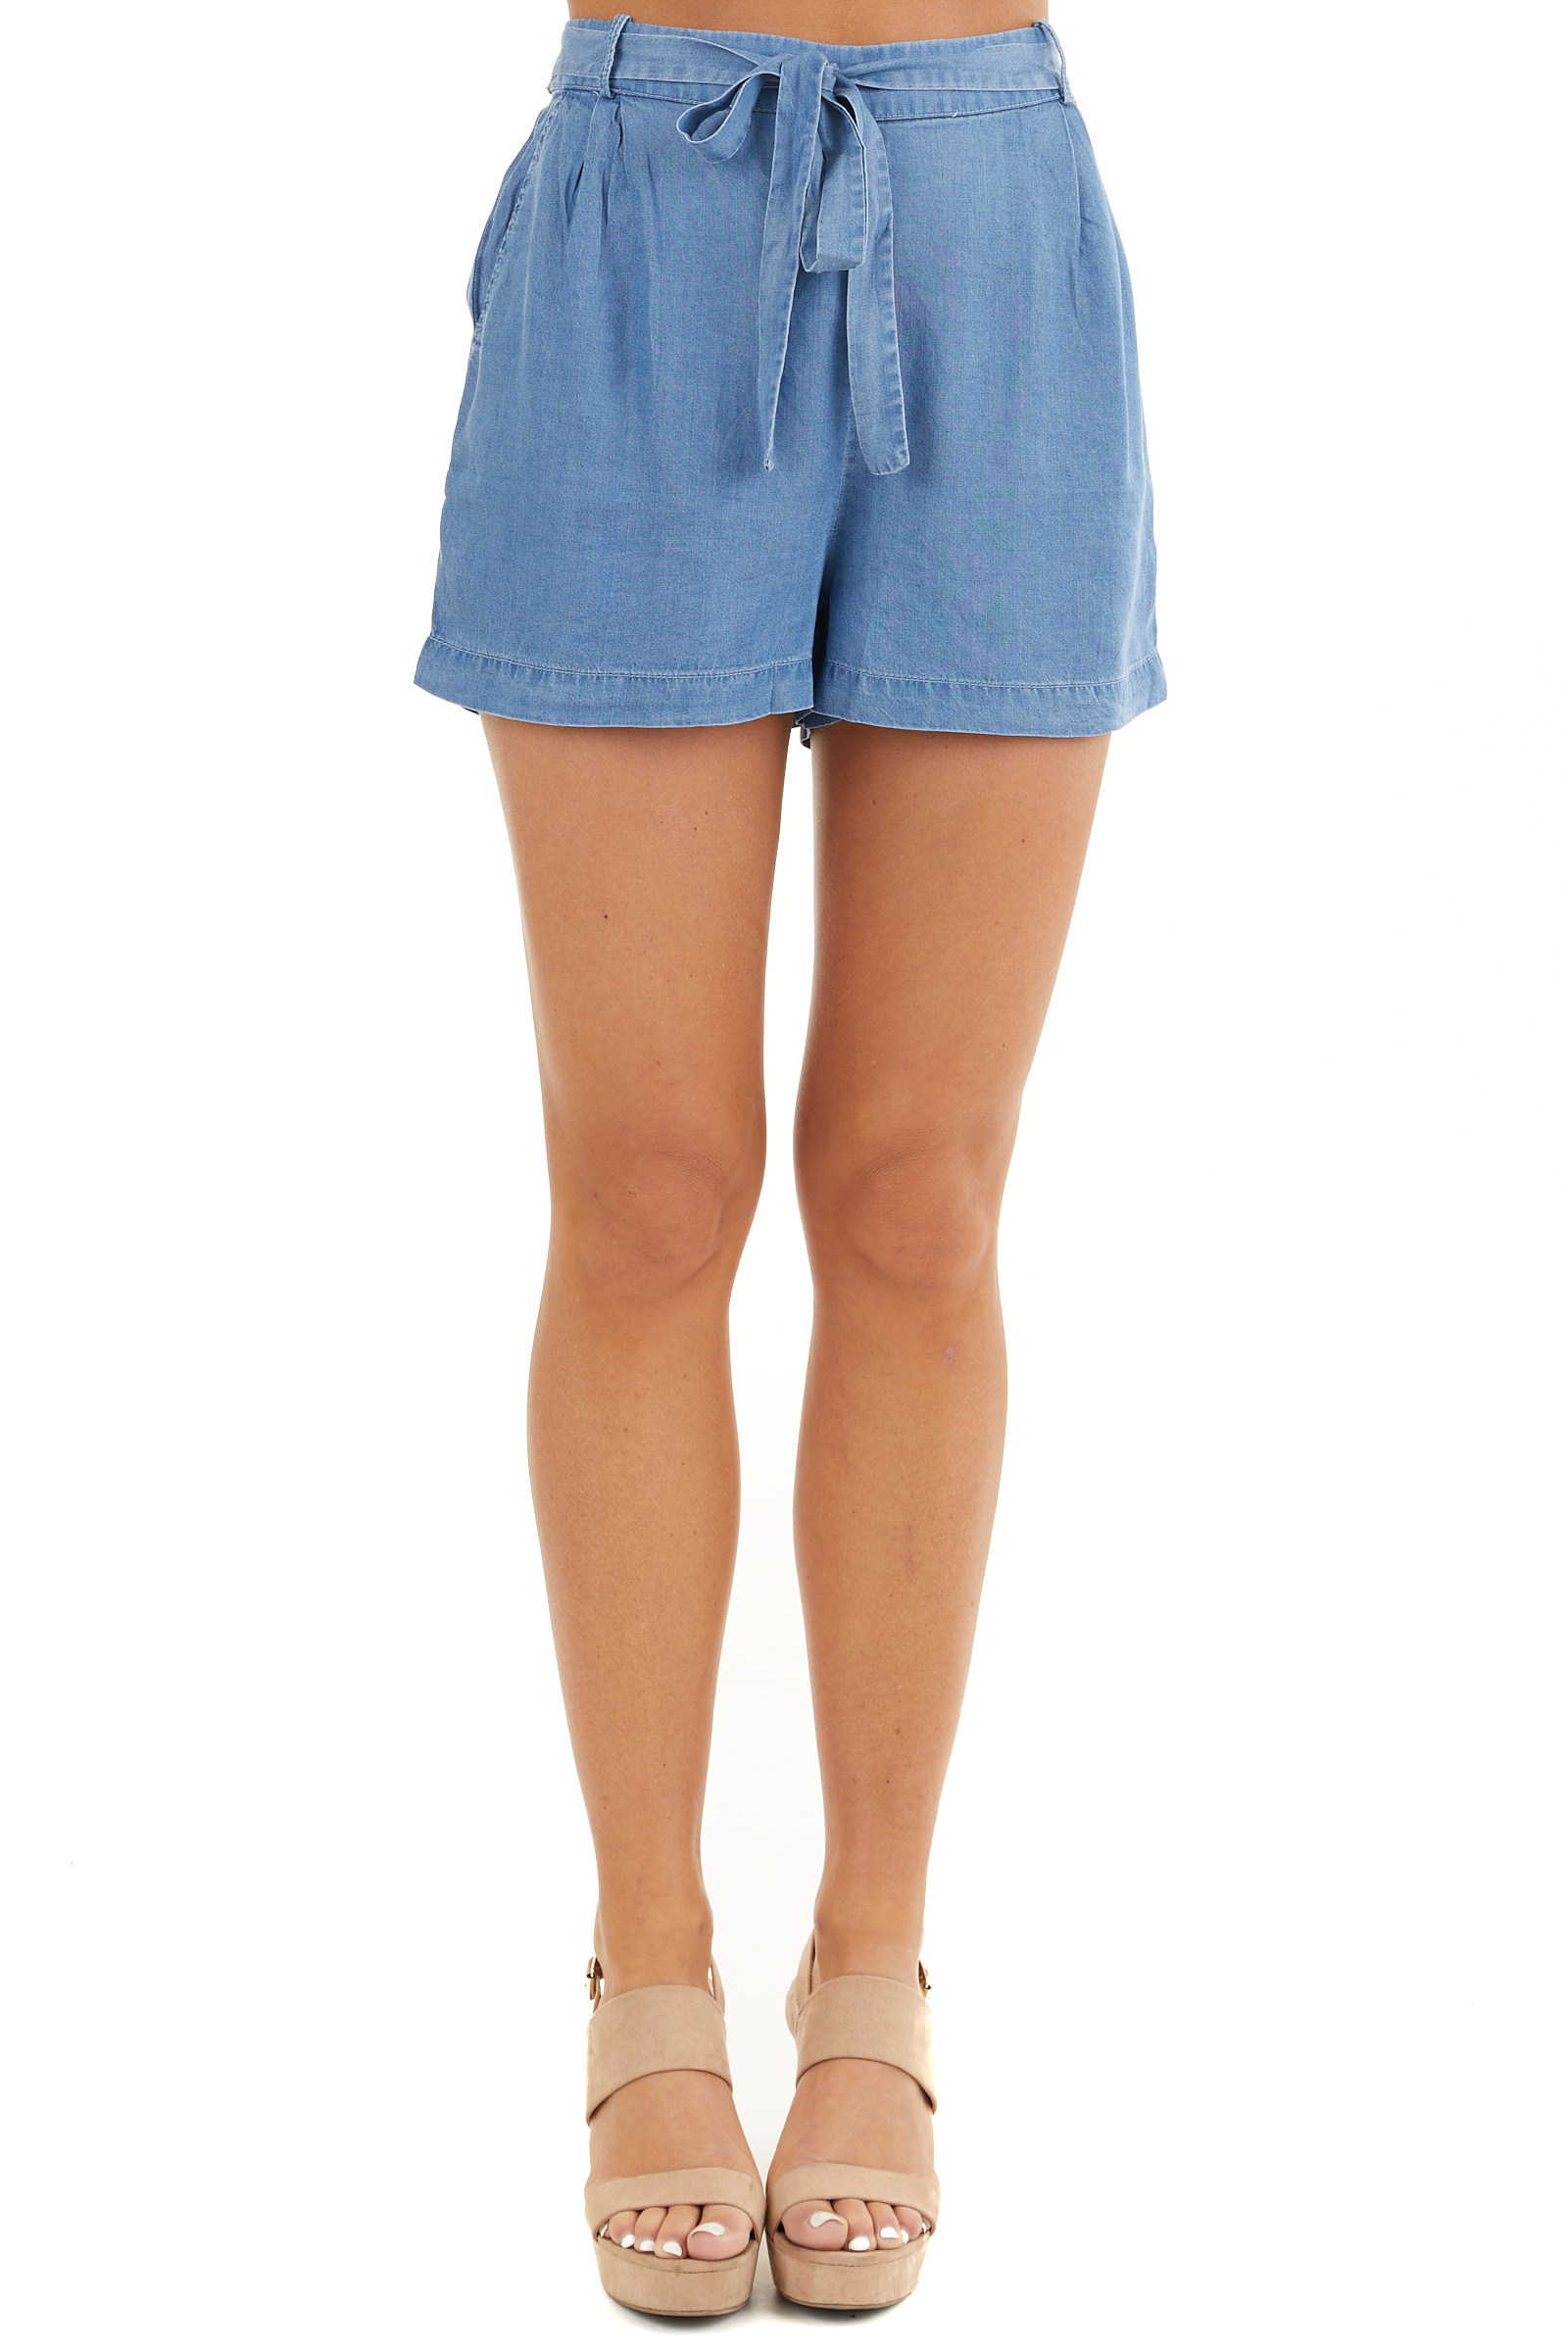 Denim Blue High Waisted Chambray Shorts with Tie Detail front view